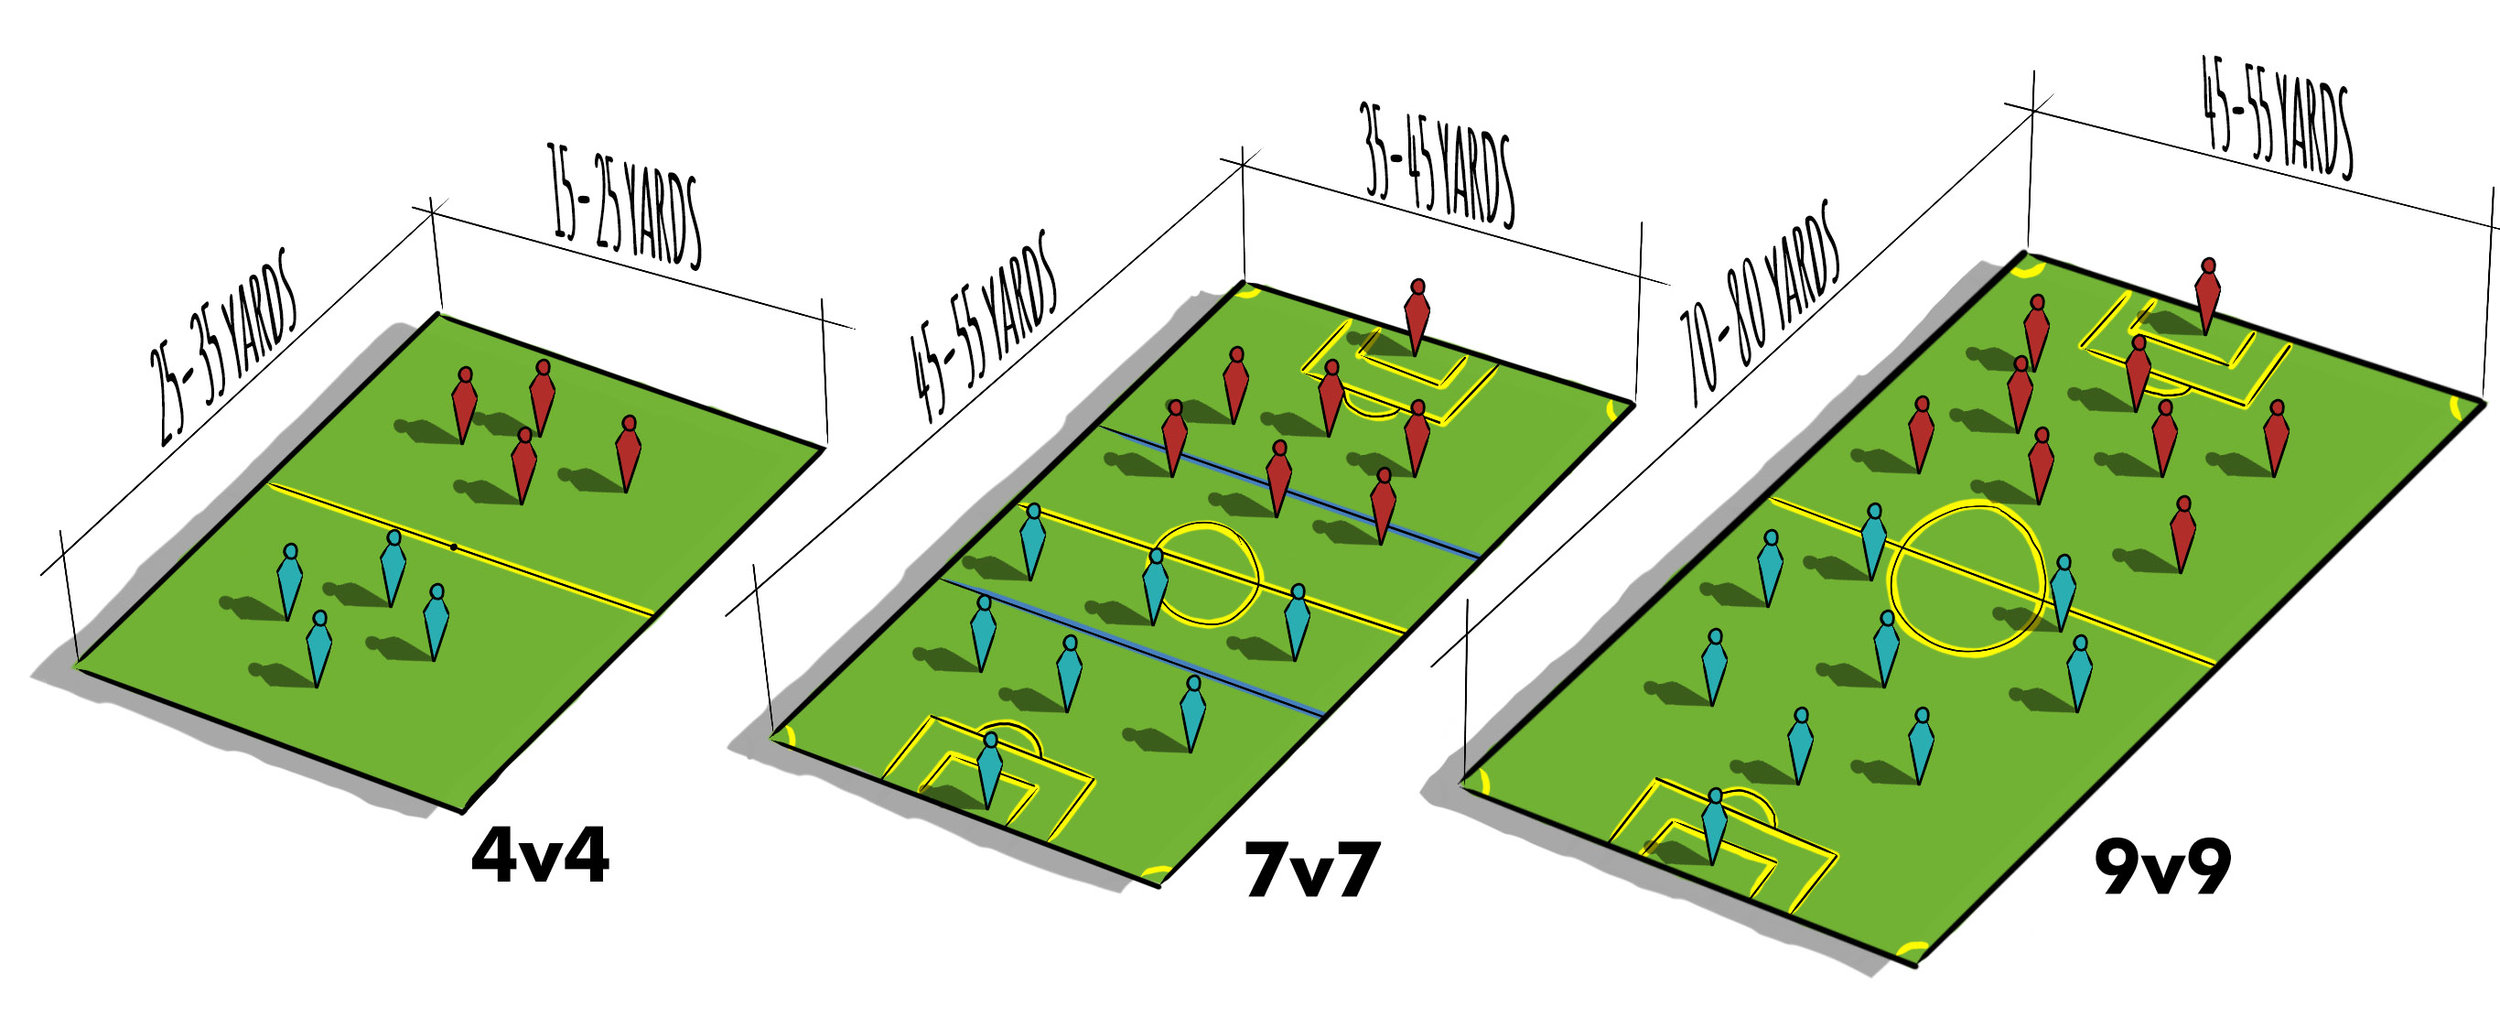 youth-soccer-field-dimension.jpg